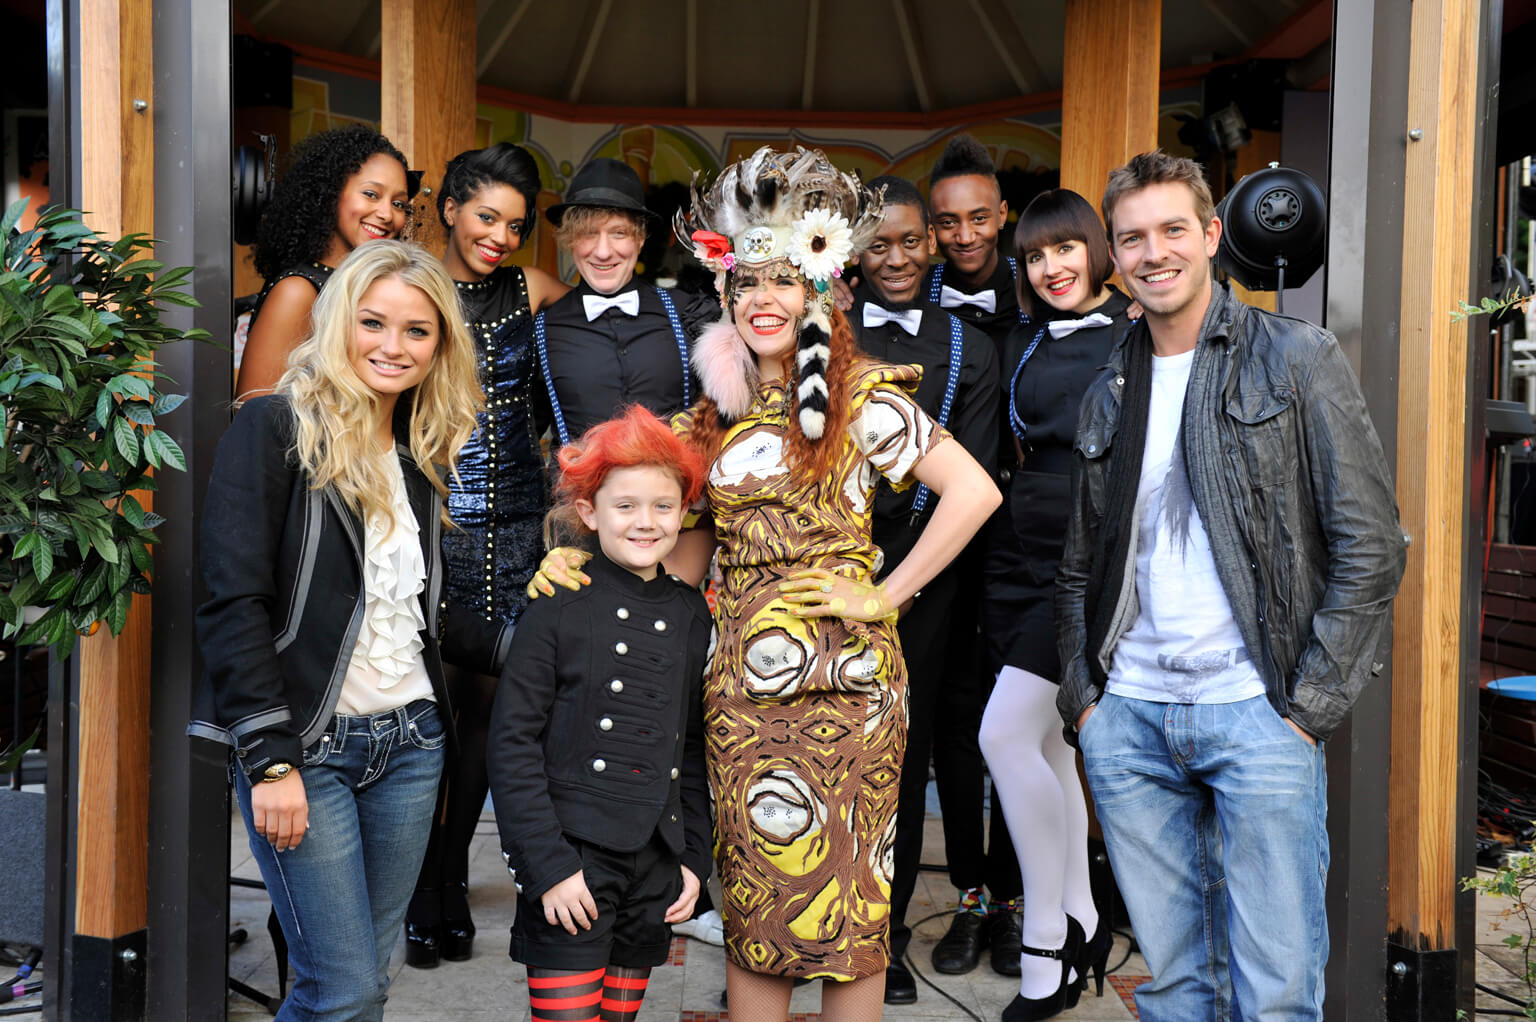 The Hollyoaks Music Show